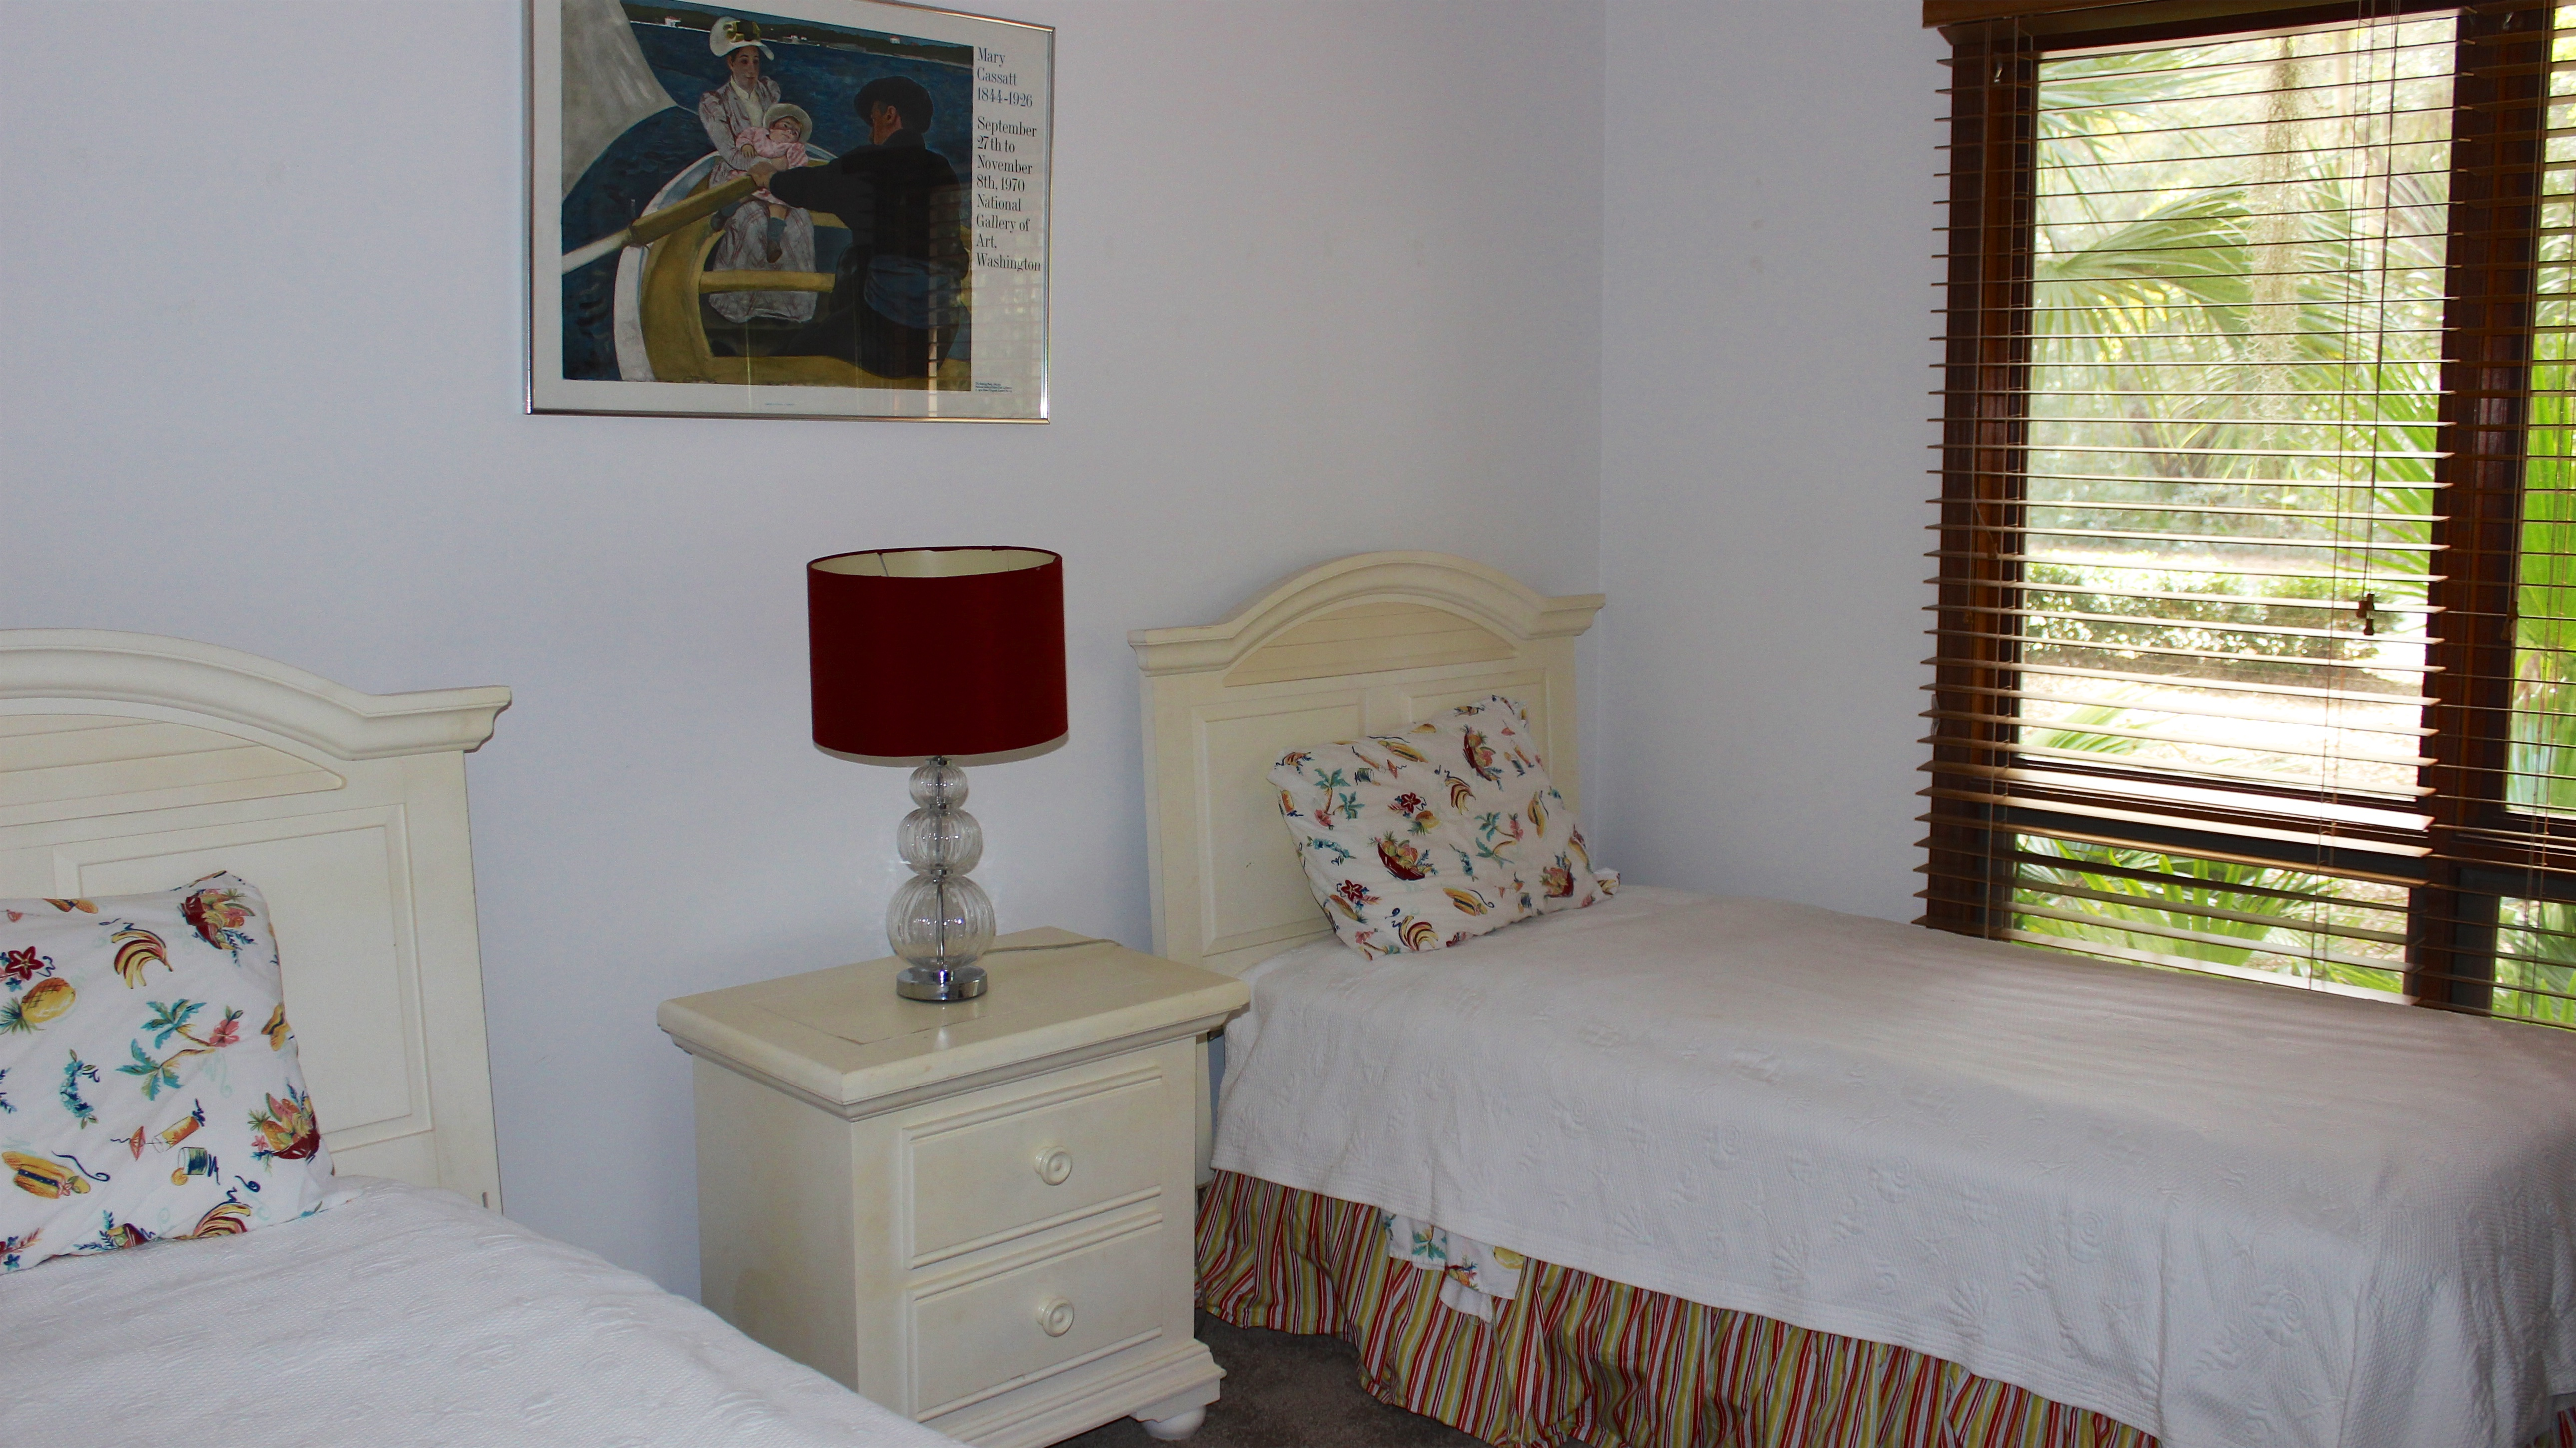 Just beyond is the 1st bedroom. It has two twin beds.